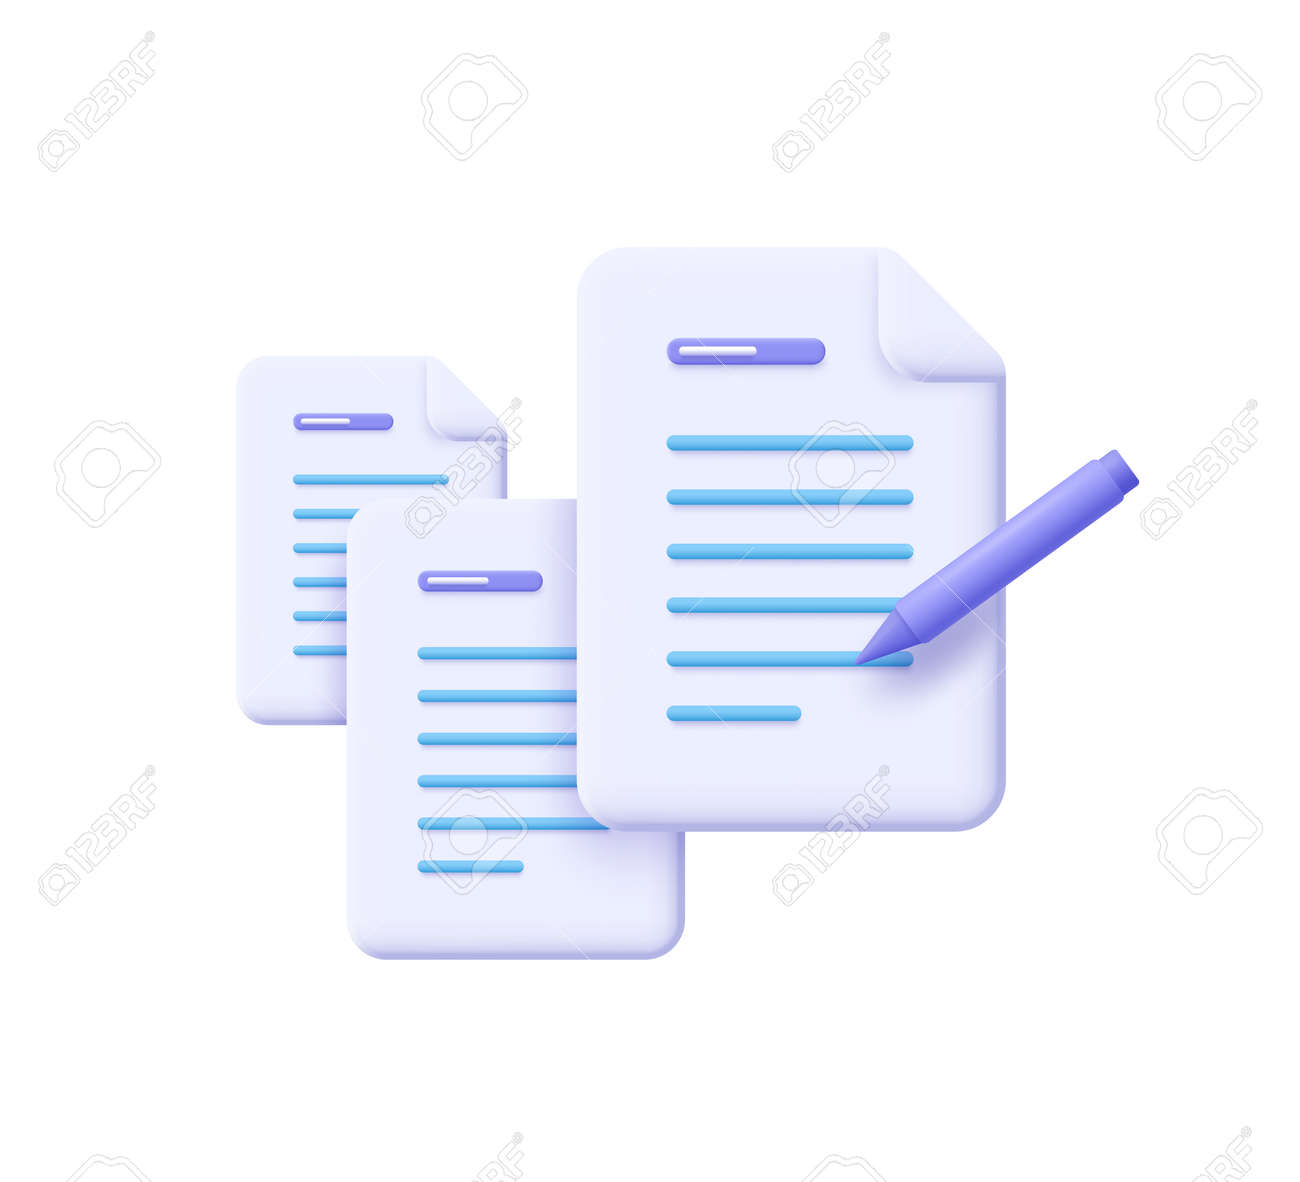 Creative writing and storytelling, brief, contract terms and conditions, document paper, assignment concept. 3d vector illustration. - 171516841